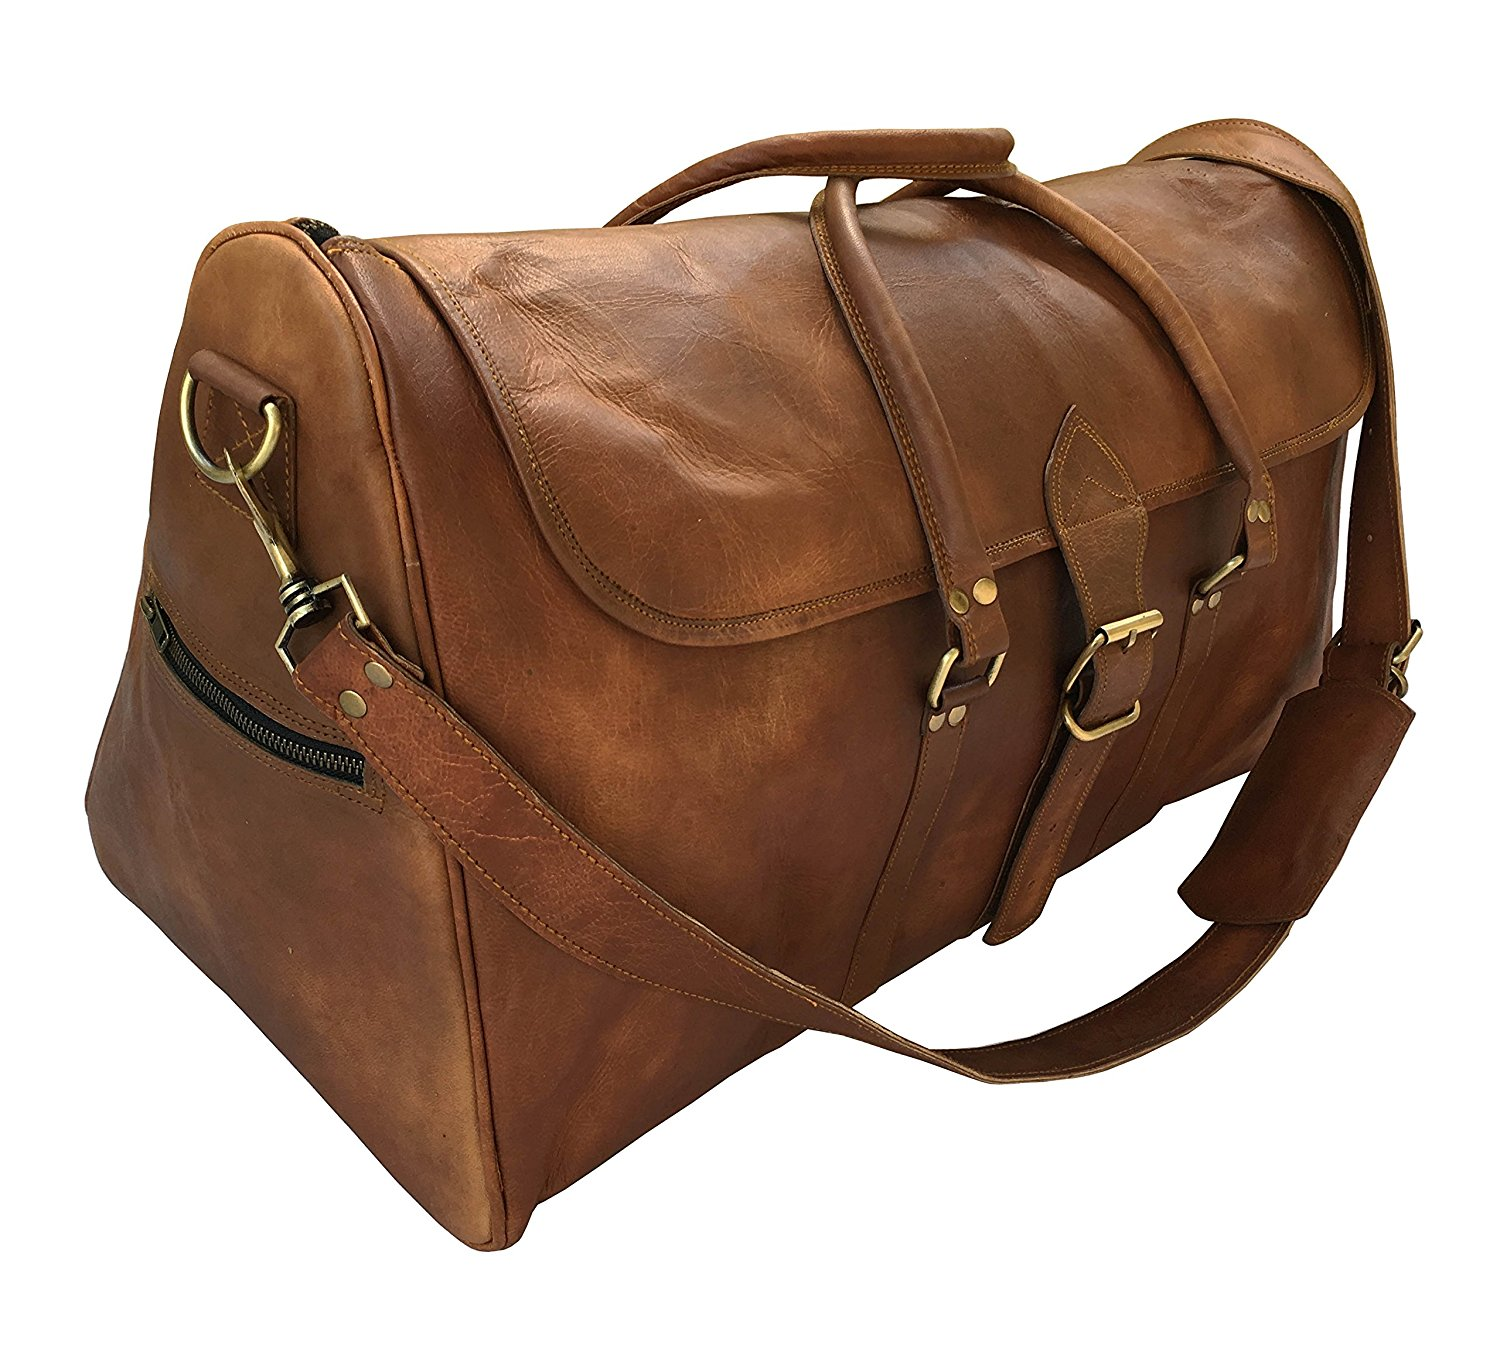 kk's 24 Inch real goat leather vintage genuine leather travel duffel bags luggage bags gym bags overnight holdall bags for men and women